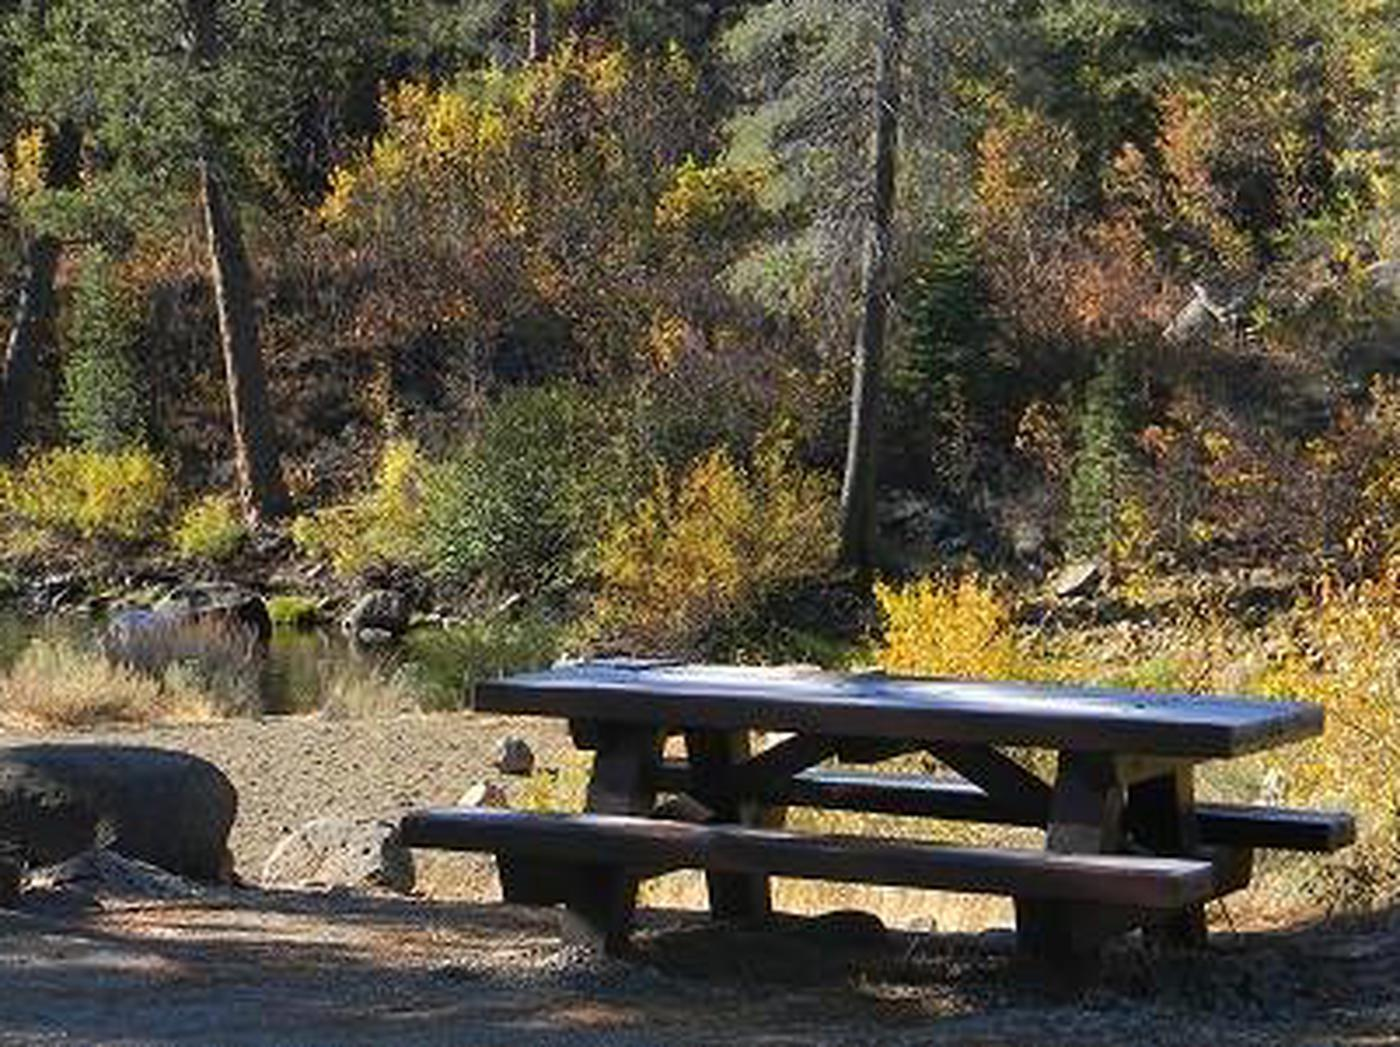 Picnic table next to the Little Truckee RiverLower Little Truckee Campsite along the Truckee River in the fall